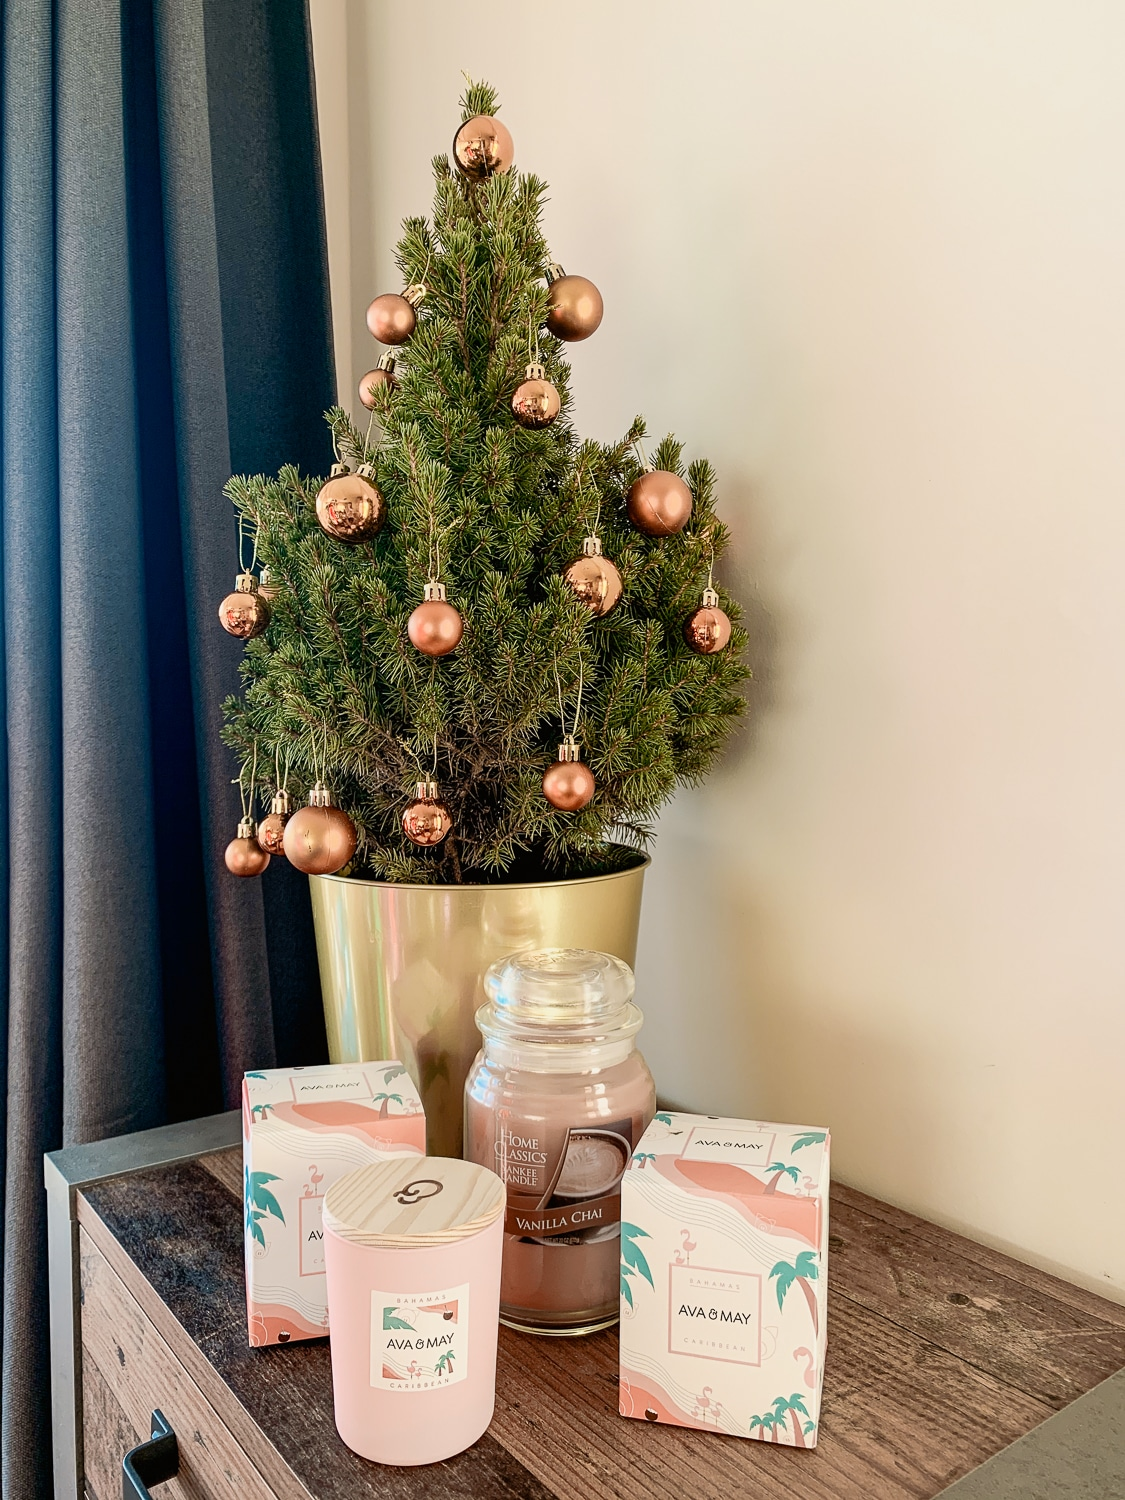 Coconut Sports Adventskalender 2020: Mein Adventskalender Gewinnspiel - Yankee Candle Ava & May